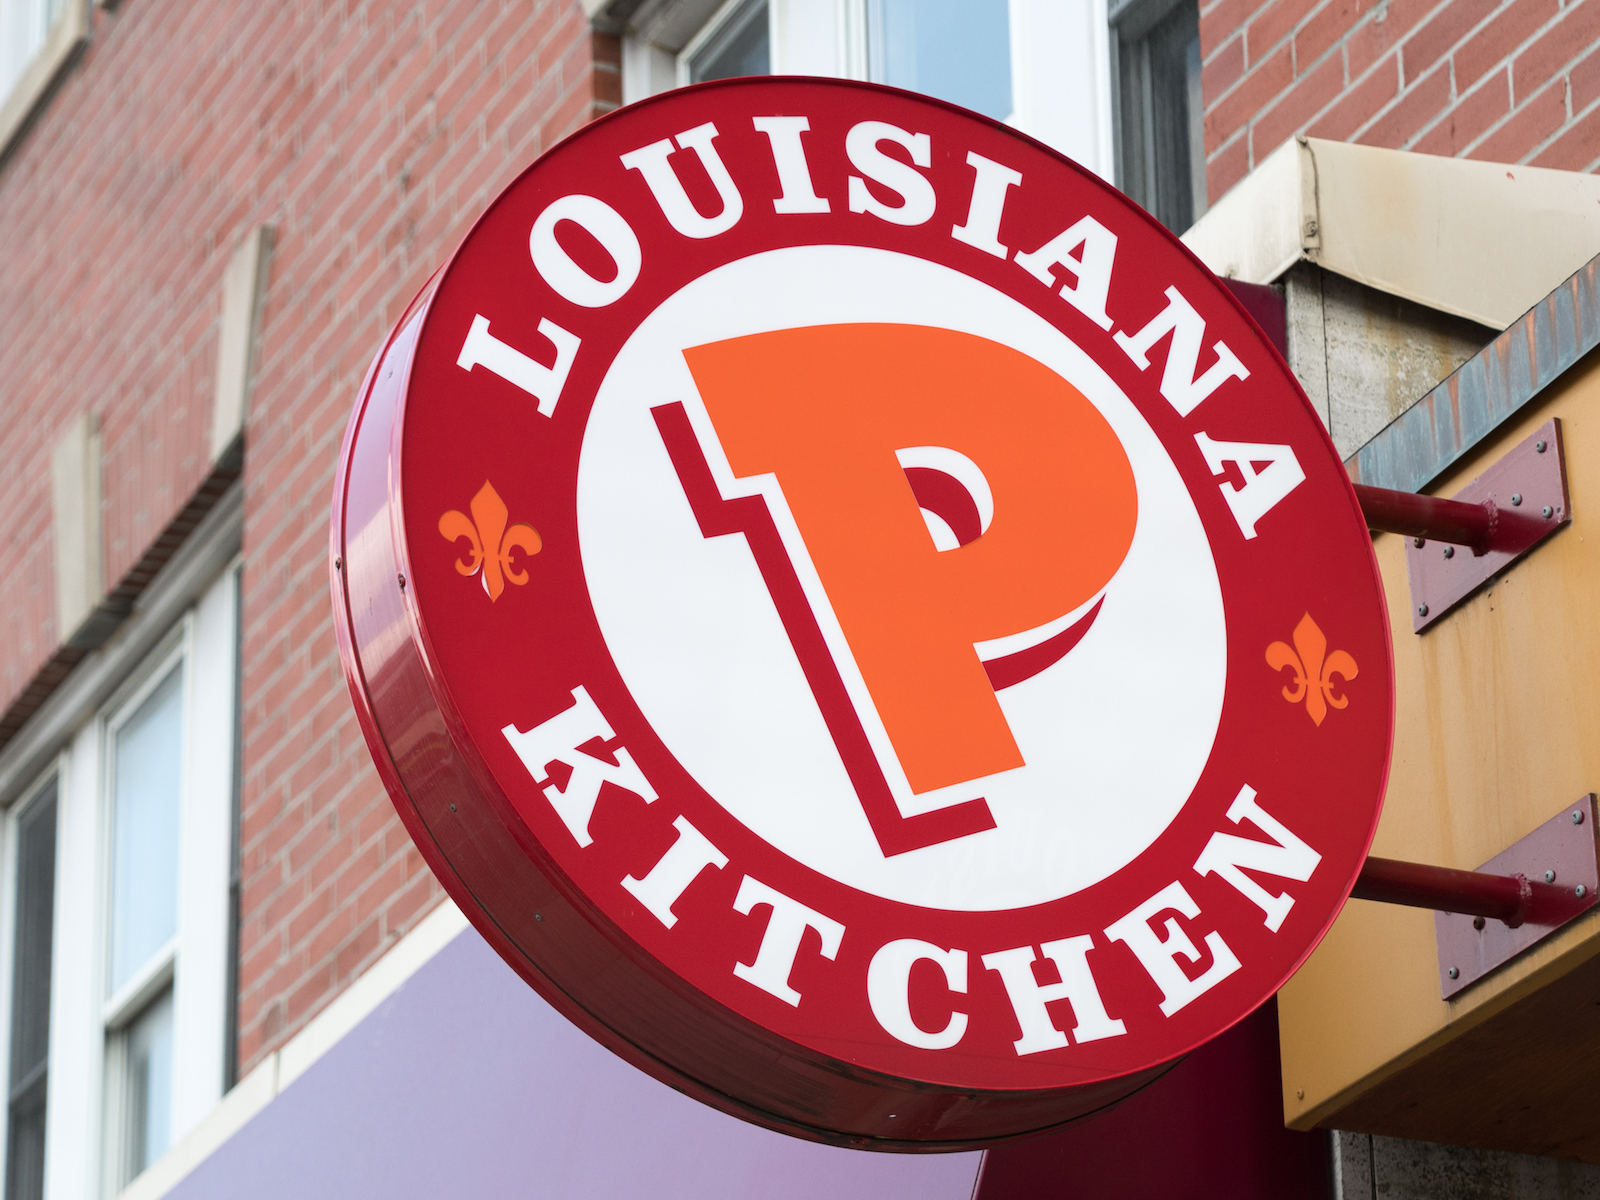 A Popular Restaurant Is Catching Heat For Buying Chicken From Popeyes